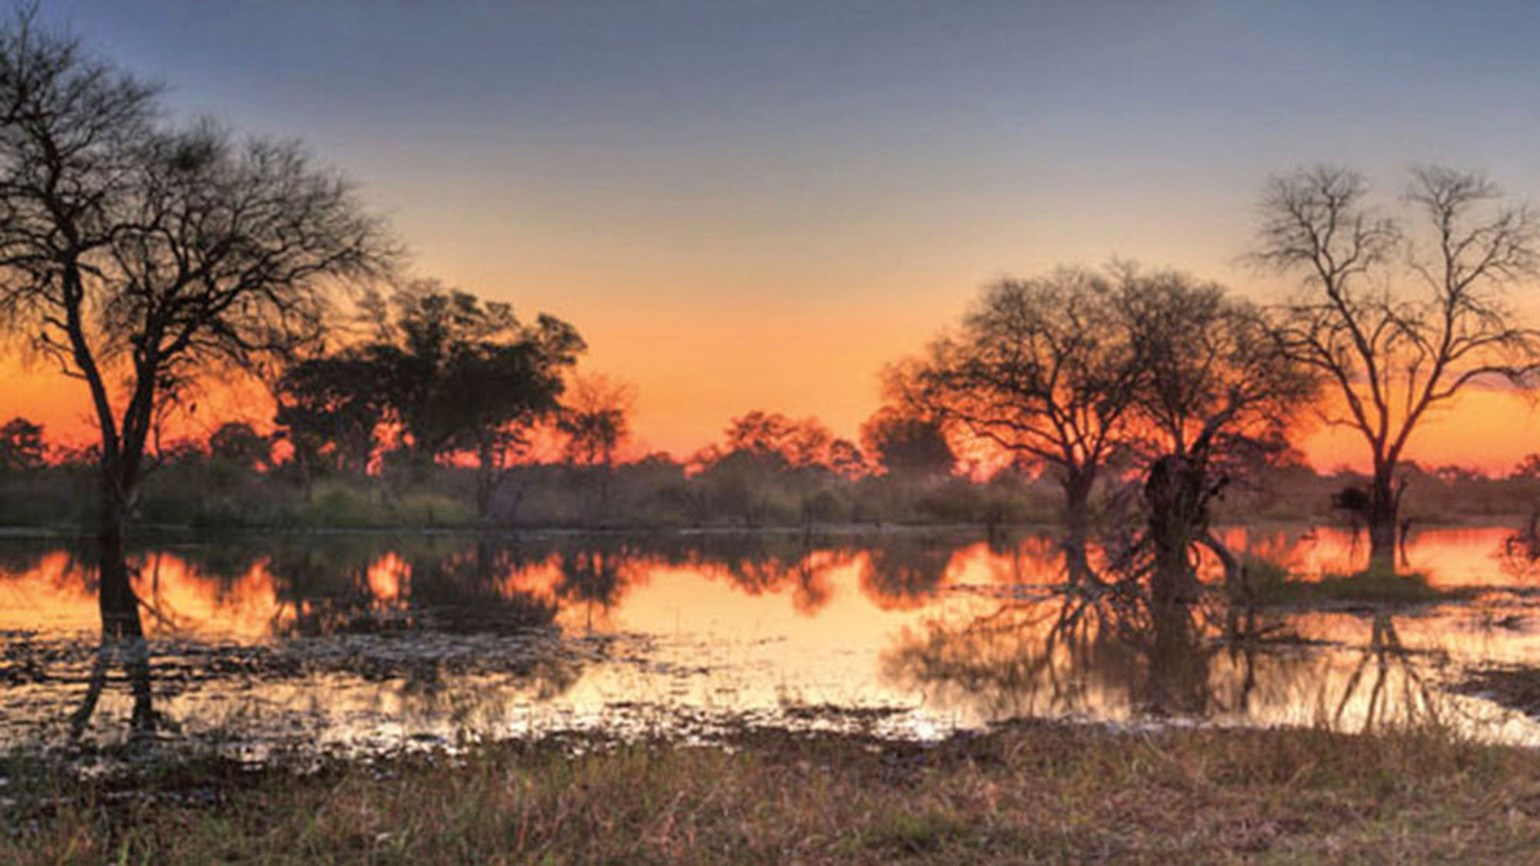 Exploring Botswana's wildlife by air, land and water